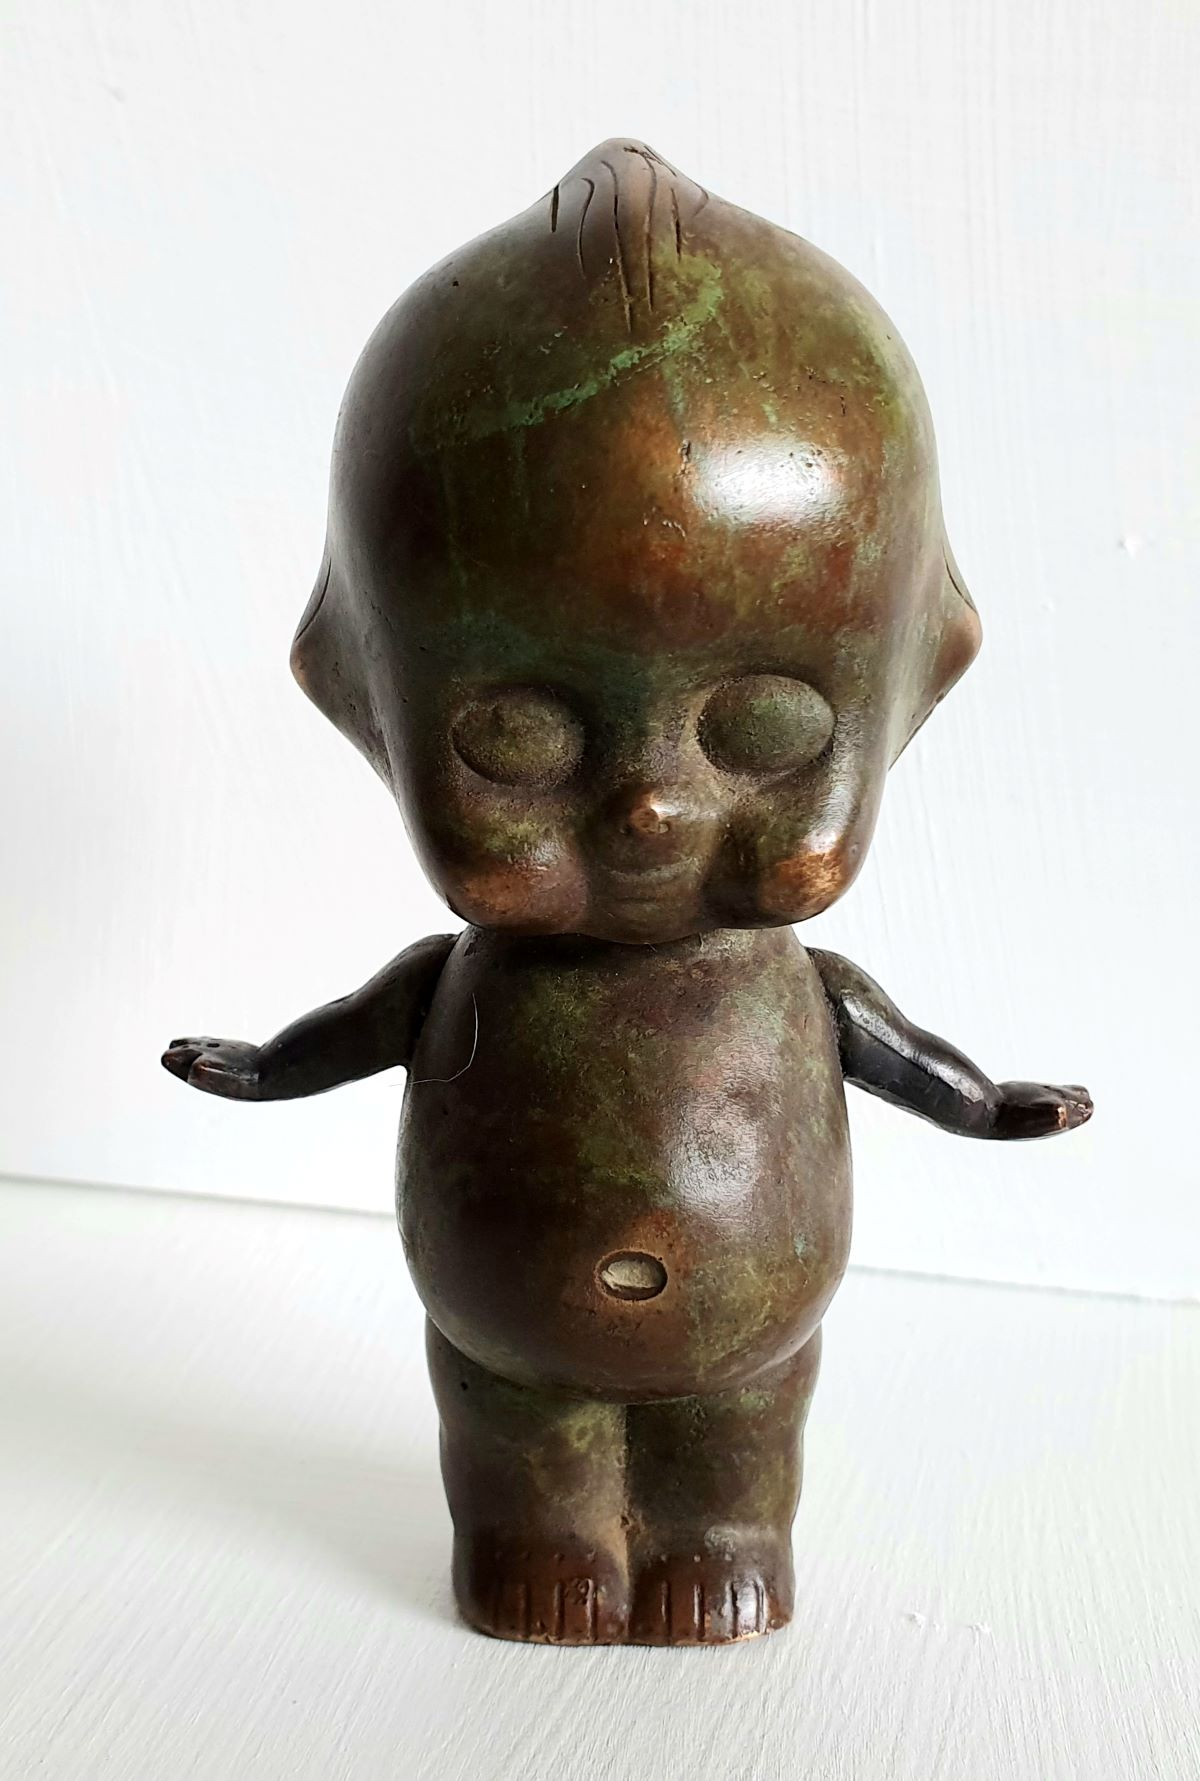 Rediscovered_Childhood_Green_Gold11_x_8cm_Bronze_web